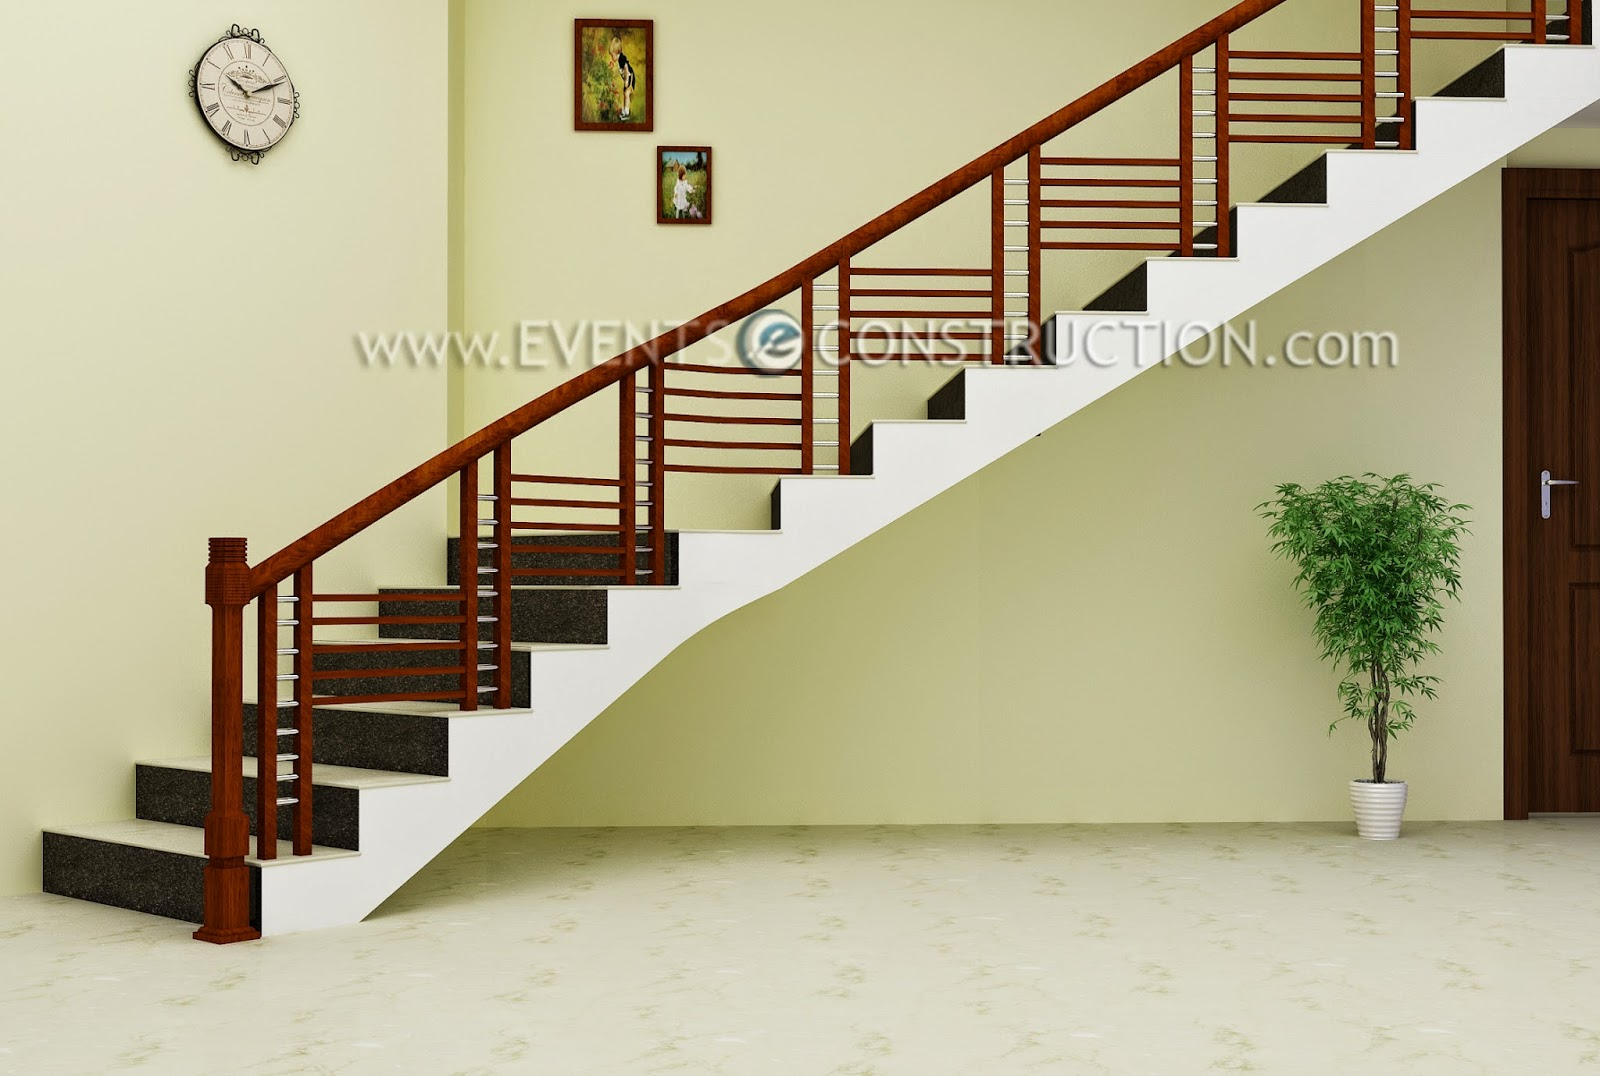 Stairway Designs Evens Construction Pvt Ltd Simple Wooden Staircase Design